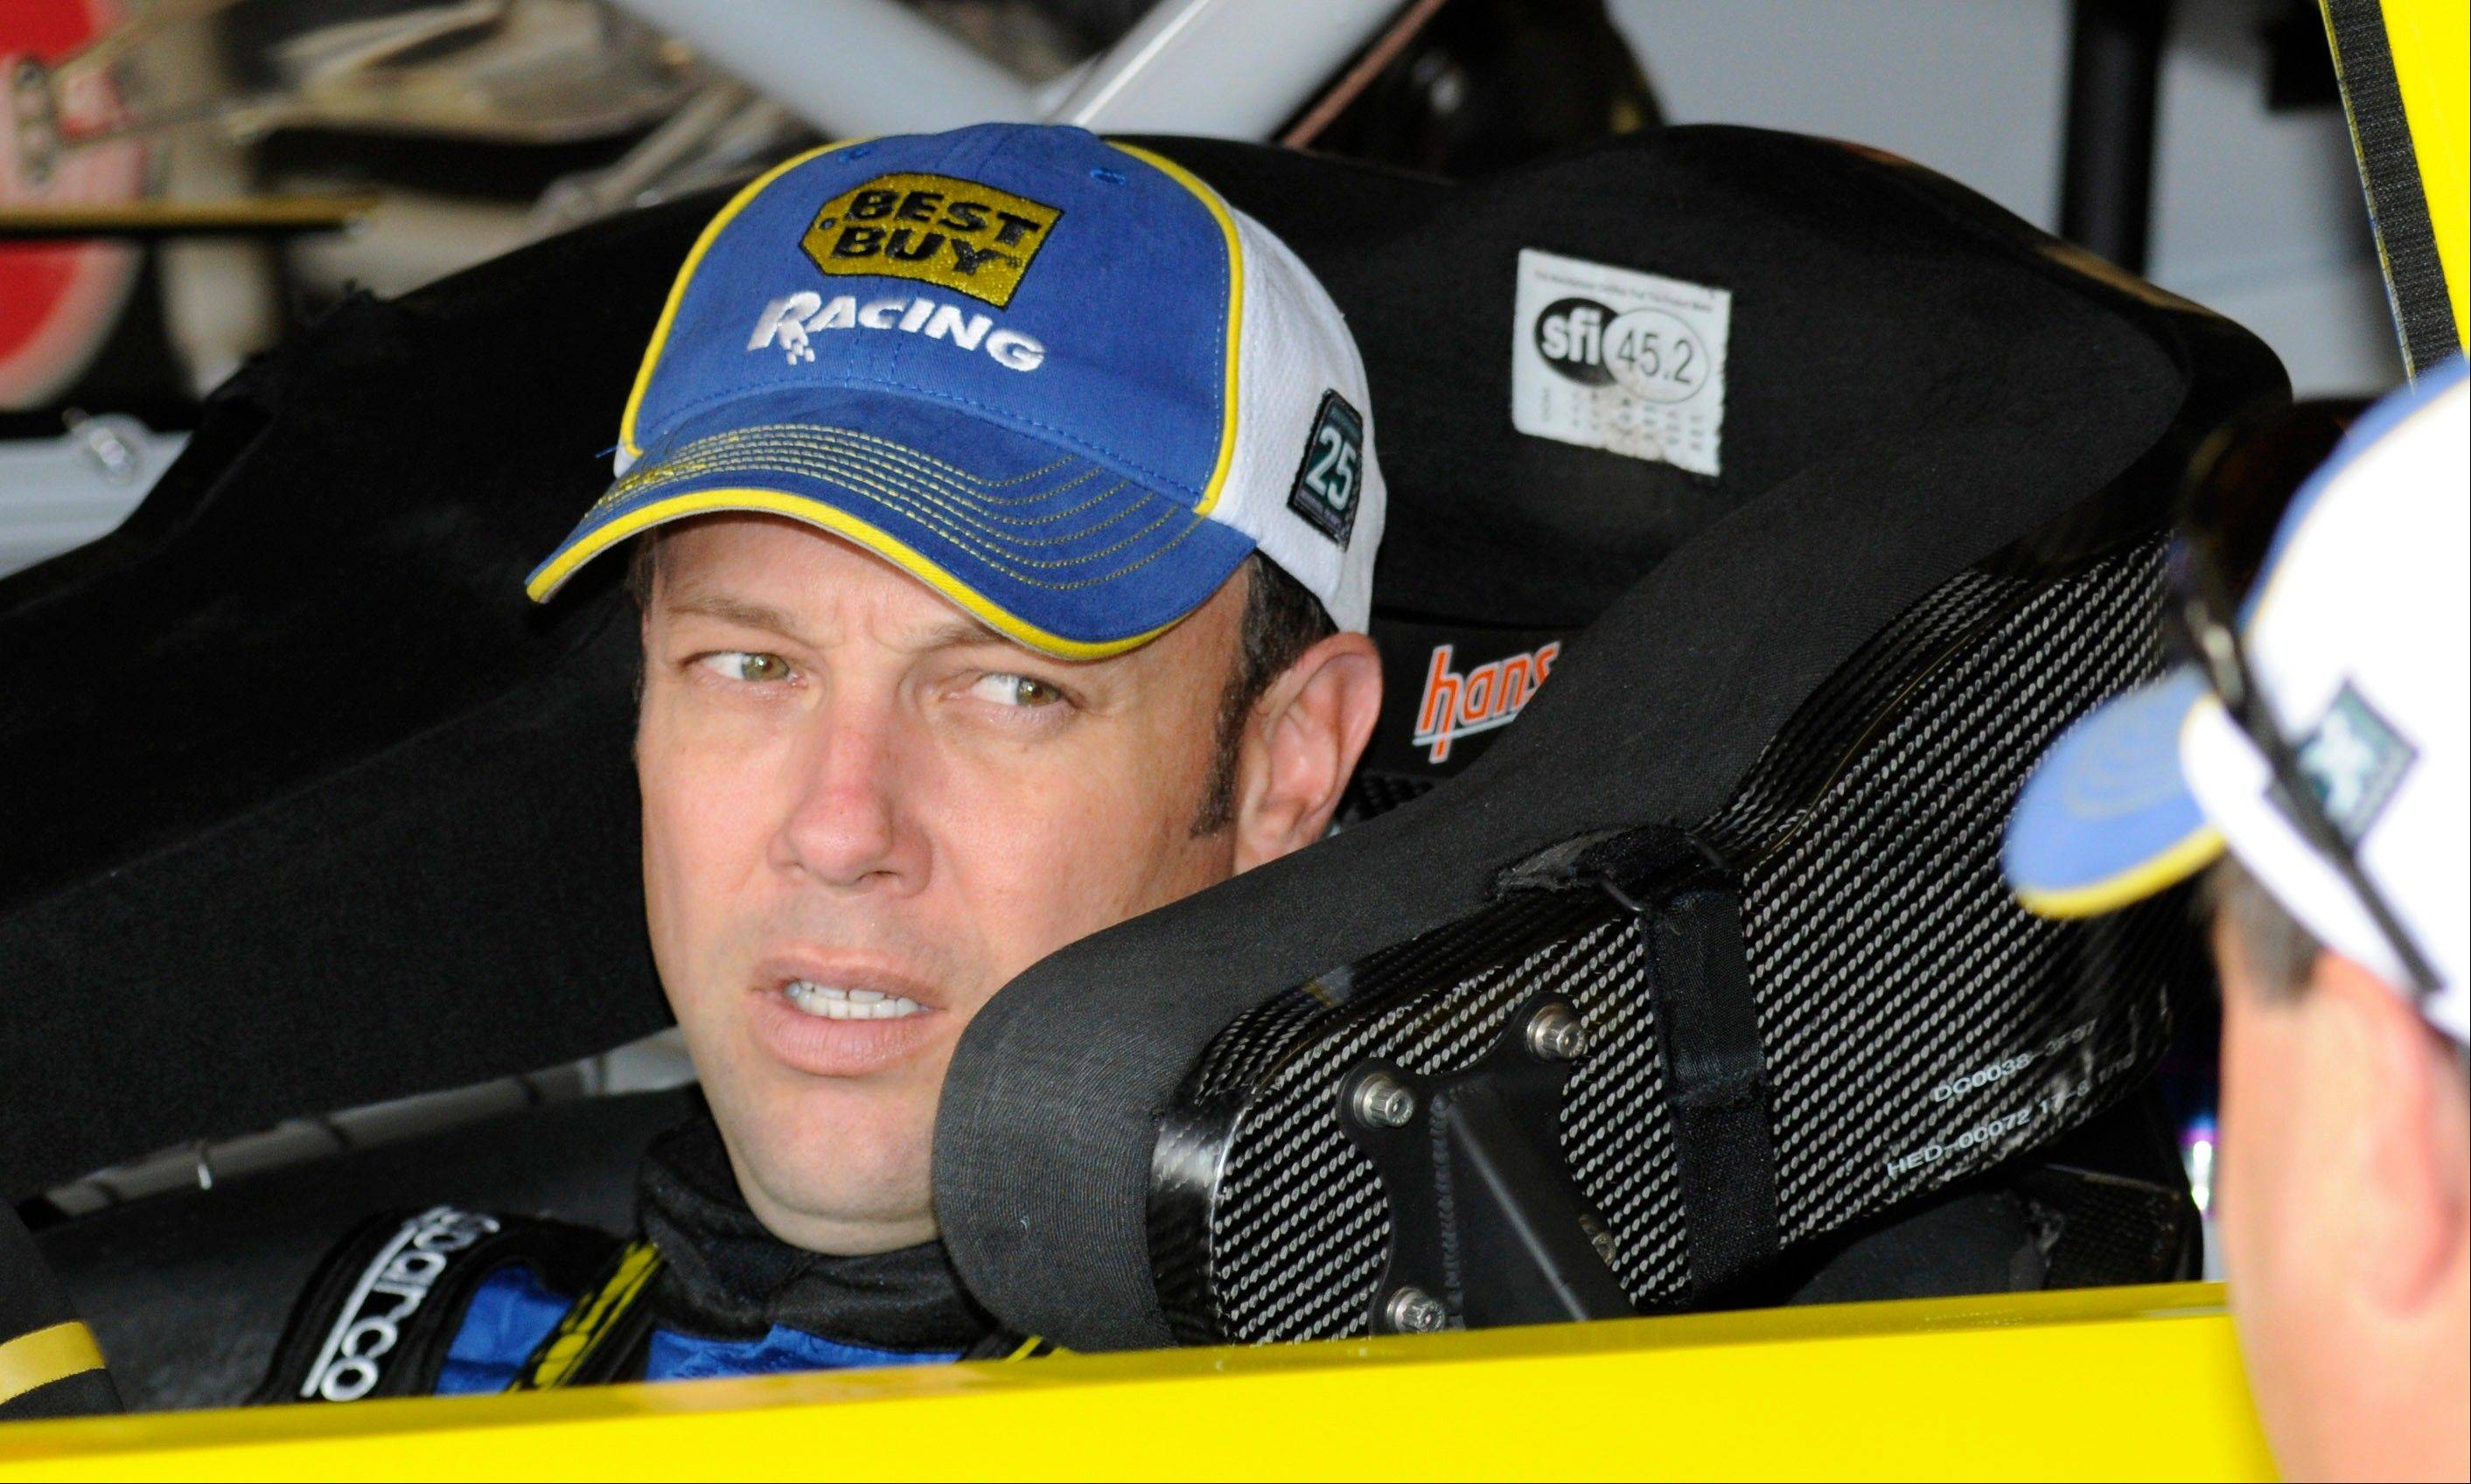 Matt Kenseth has a new deal in place with a new team, but said he is not ready to announce where he will be in 2013. All signs point to Joe Gibbs Racing, one of the few teams that would not be considered a step down for the 2003 Cup champion.